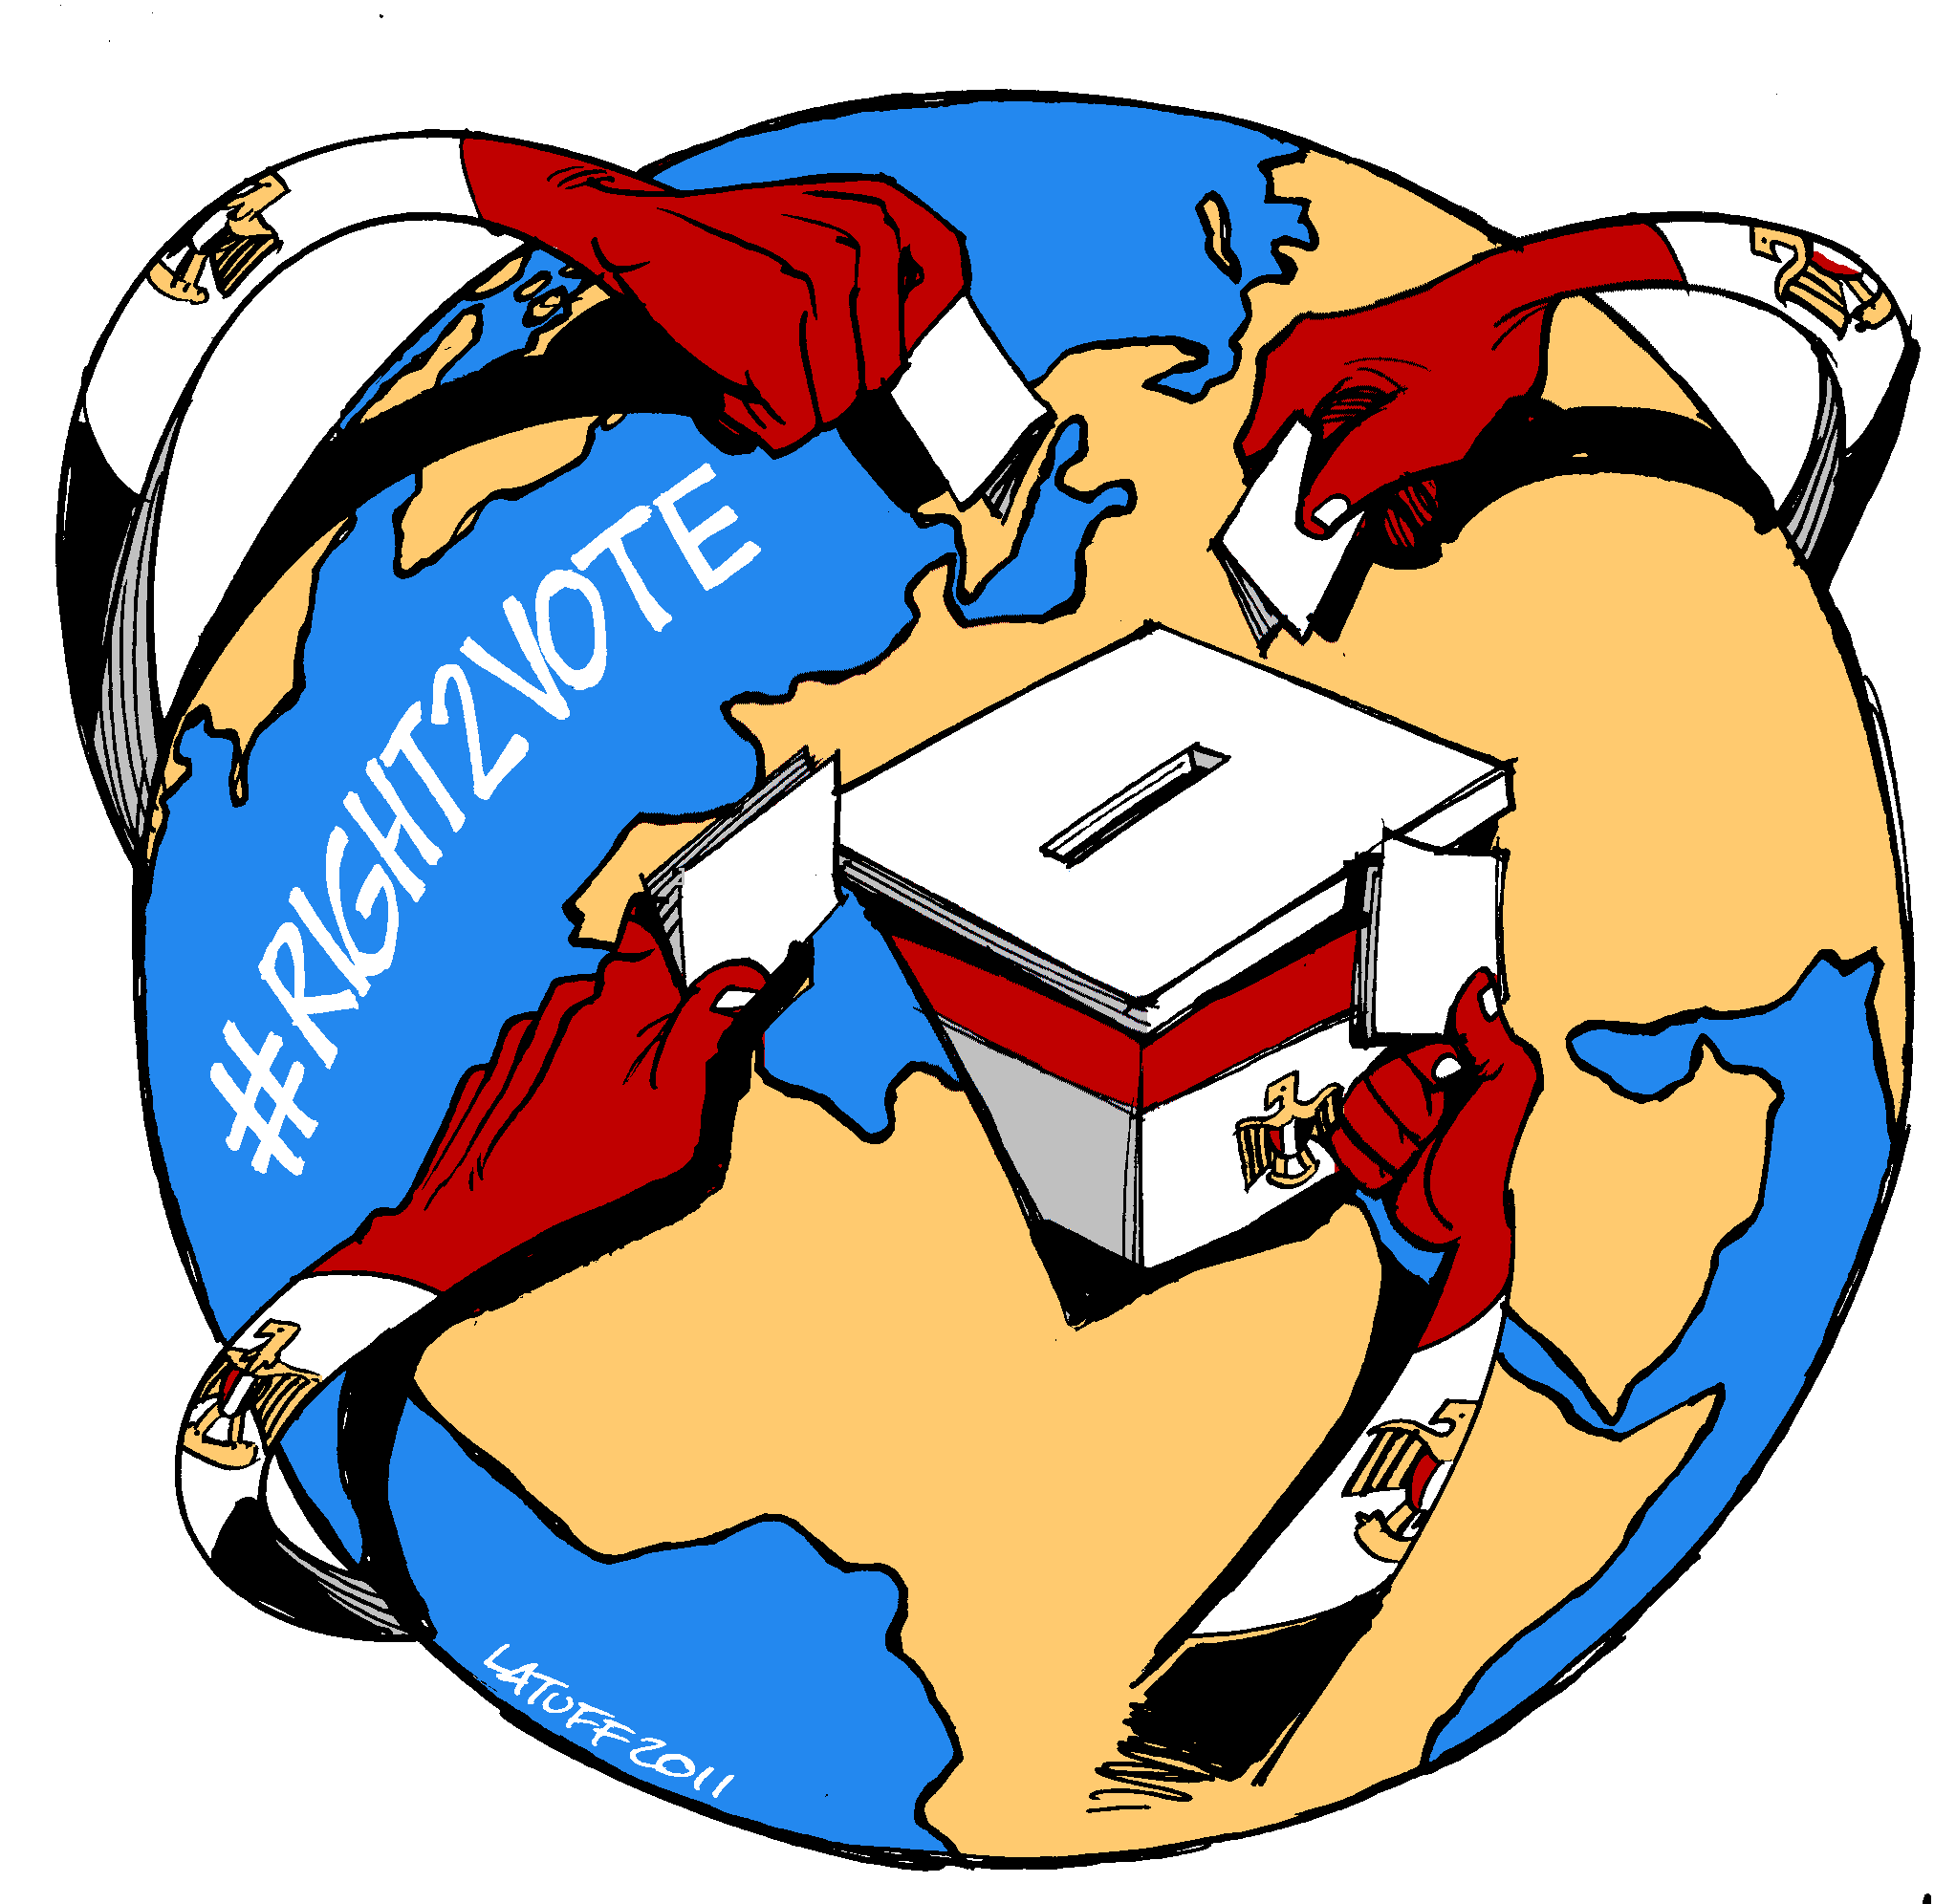 Voting clipart democratic right. Transparent png free